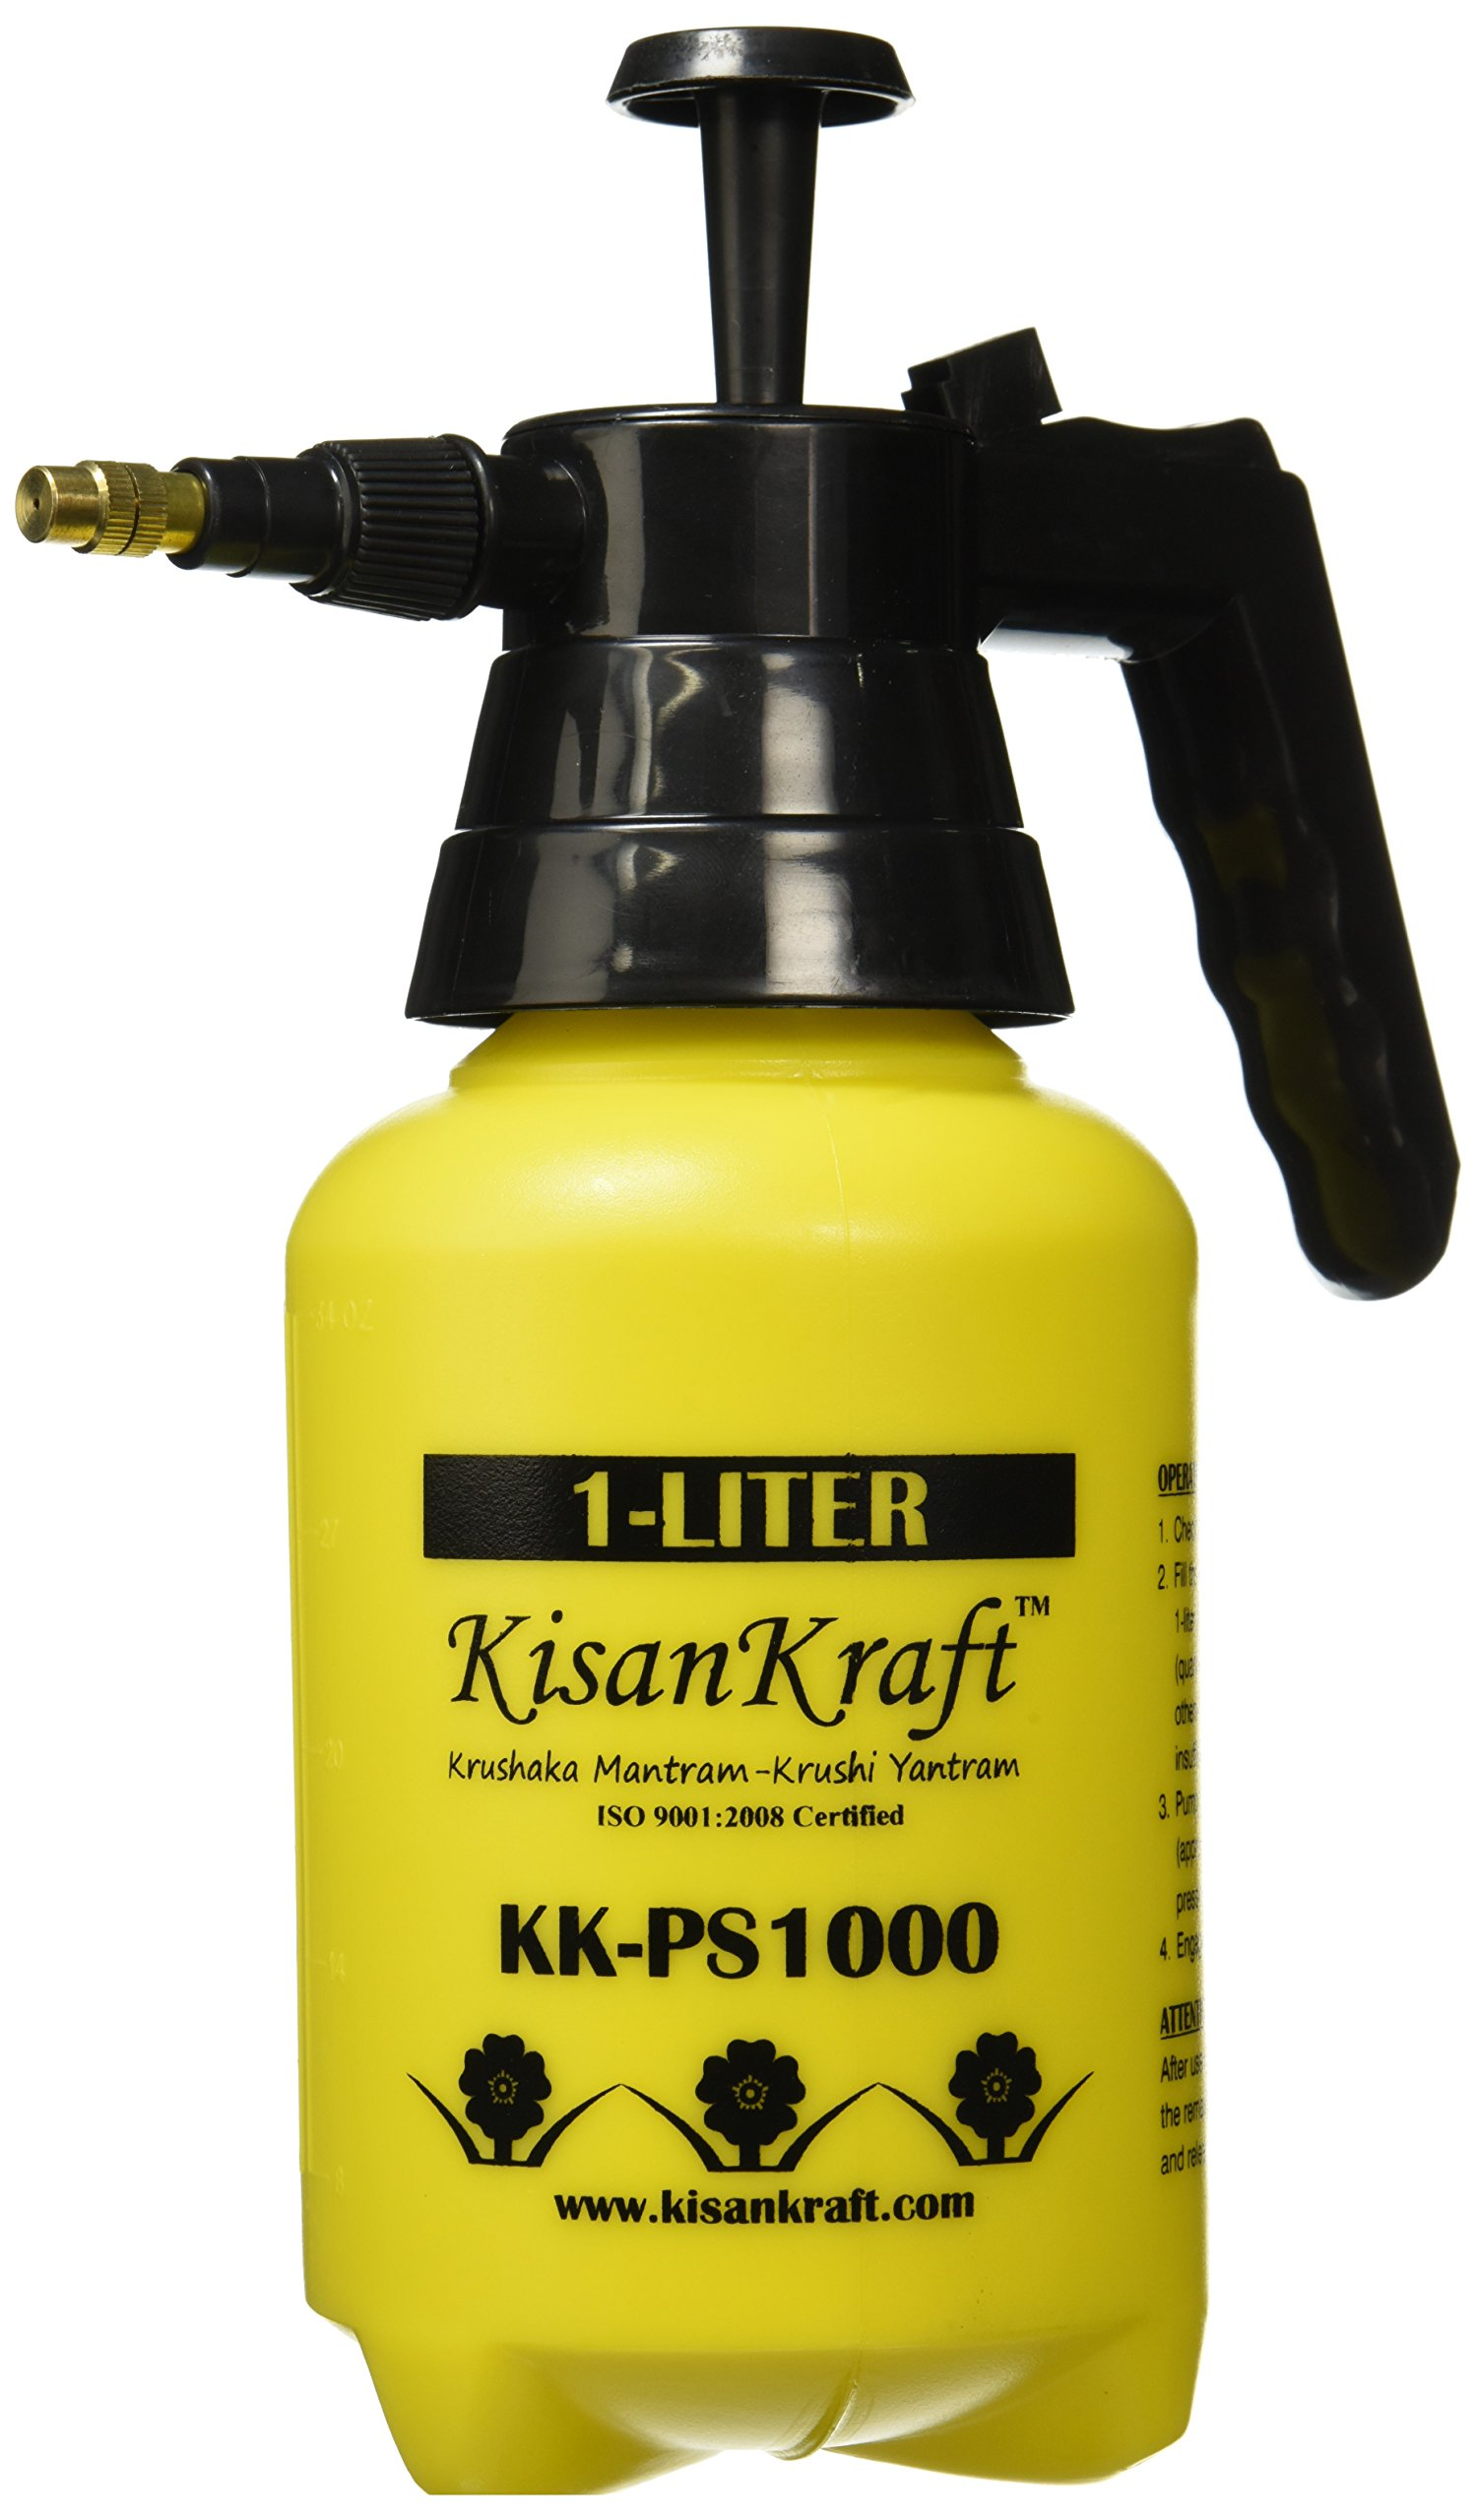 KisanKraft KK-PS1000 Manual Sprayer (1 Litre, Color May Vary, Plastic) product image